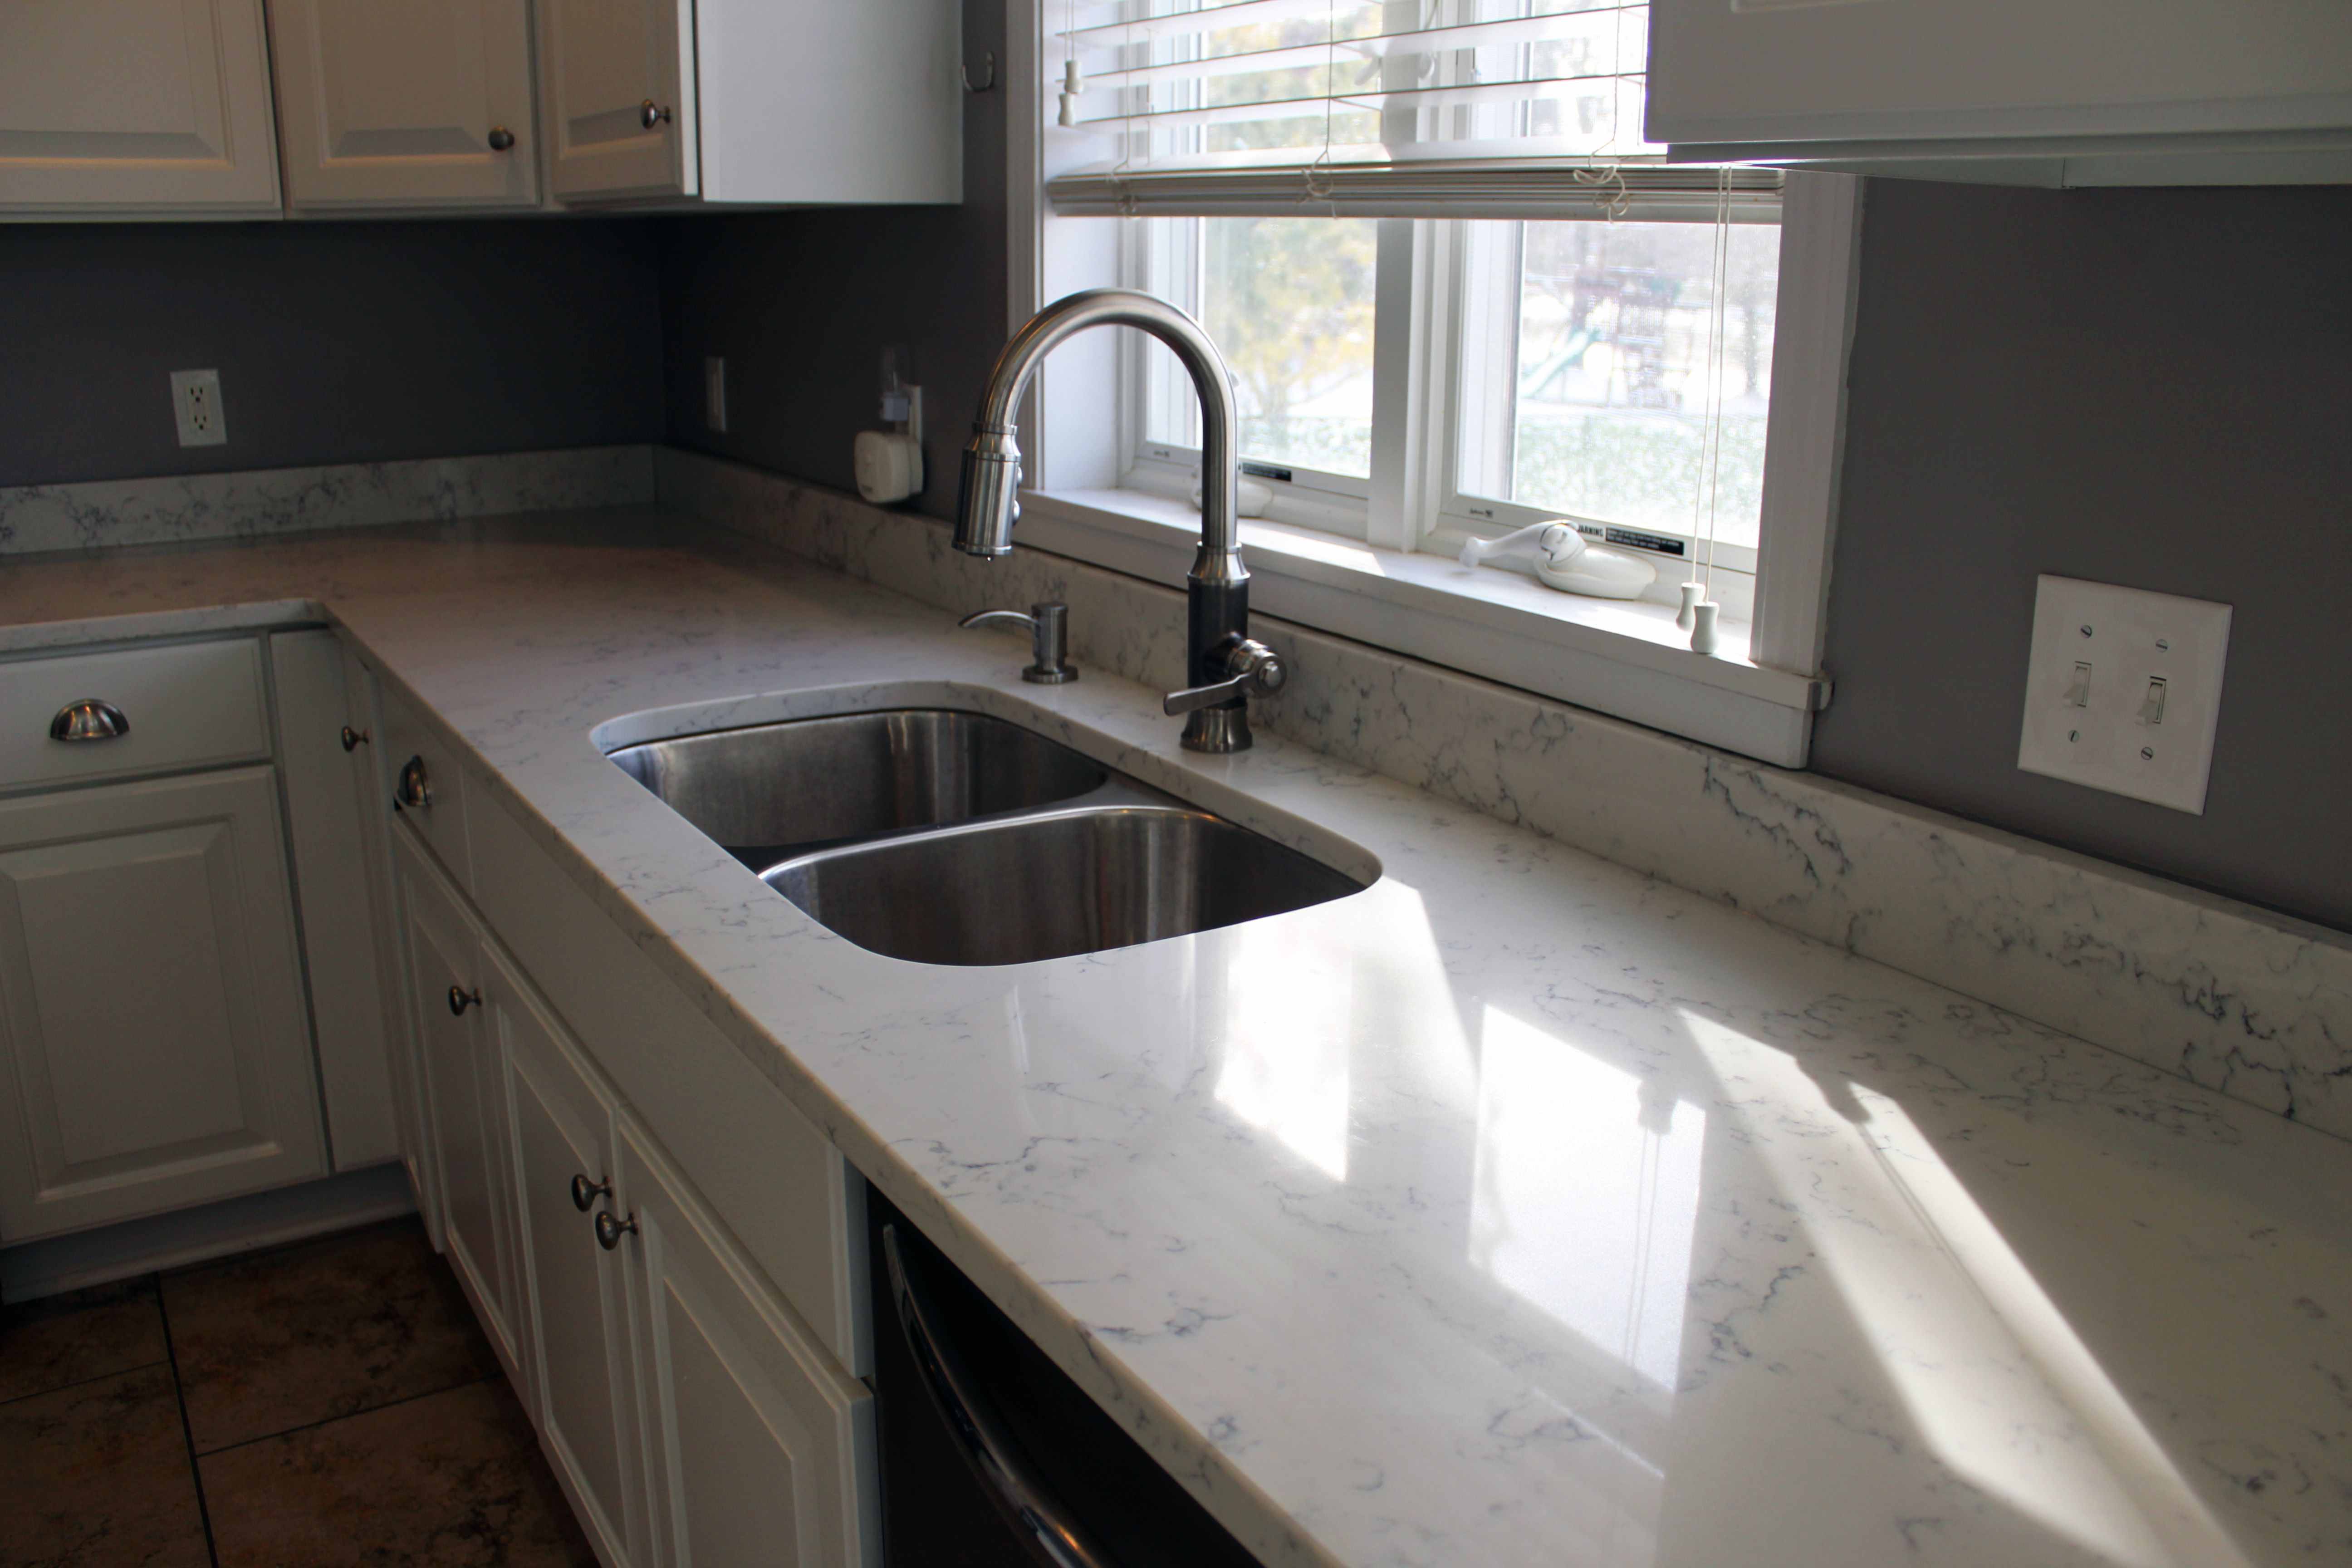 Delightful Carrara White Quartz By Aggranite; 502A Sink By Midwest/Aggranite.